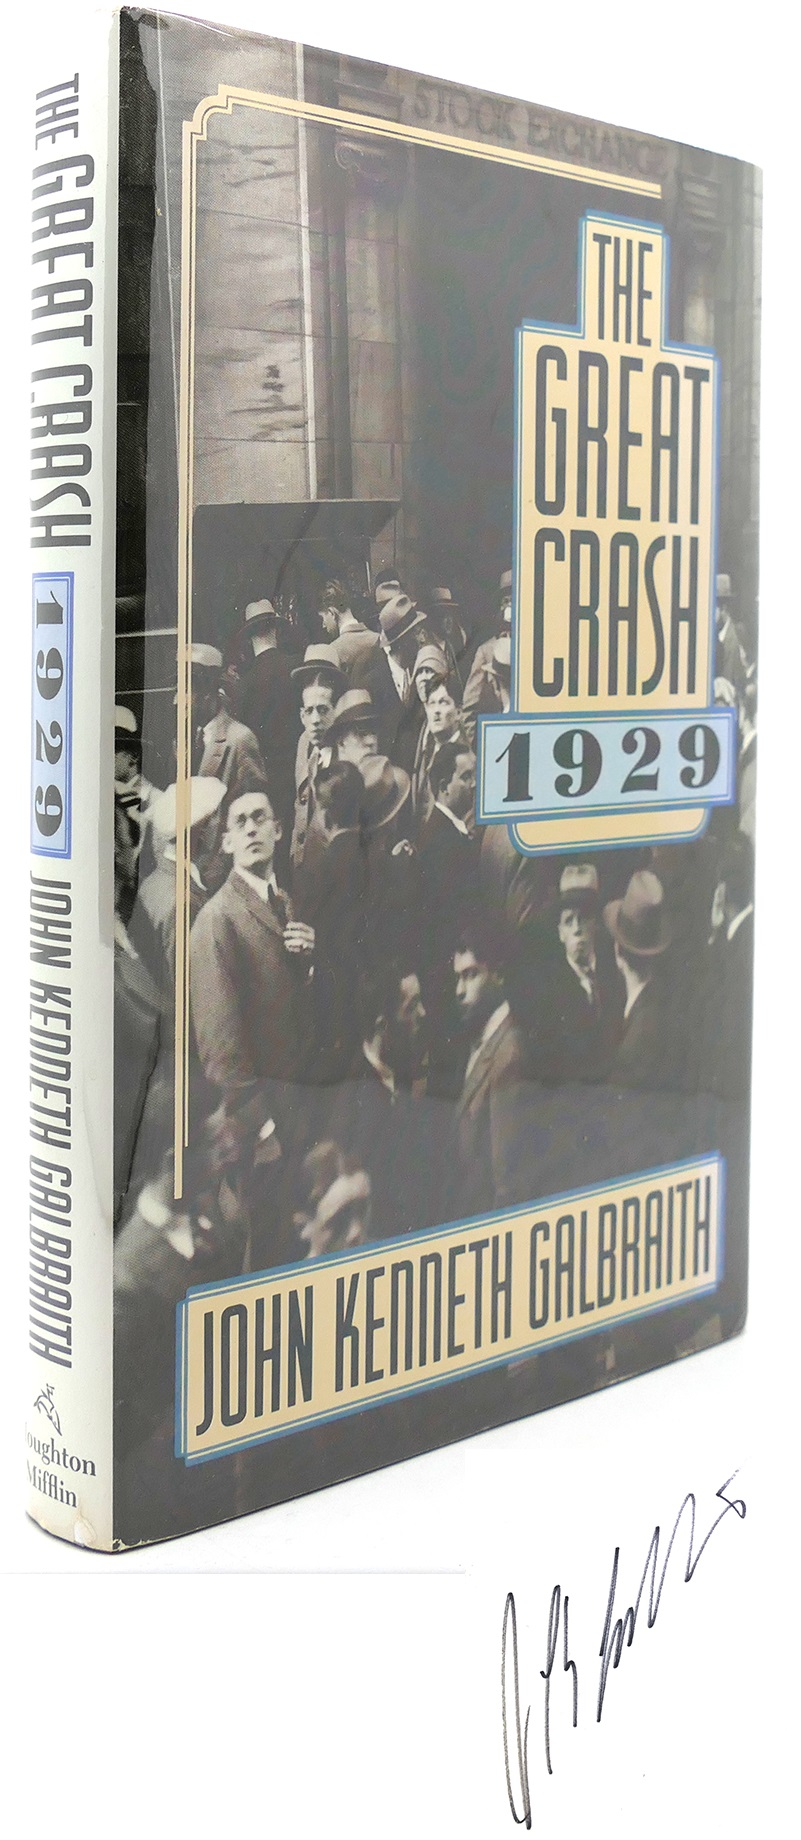 THE GREAT CRASH 1929 Signed